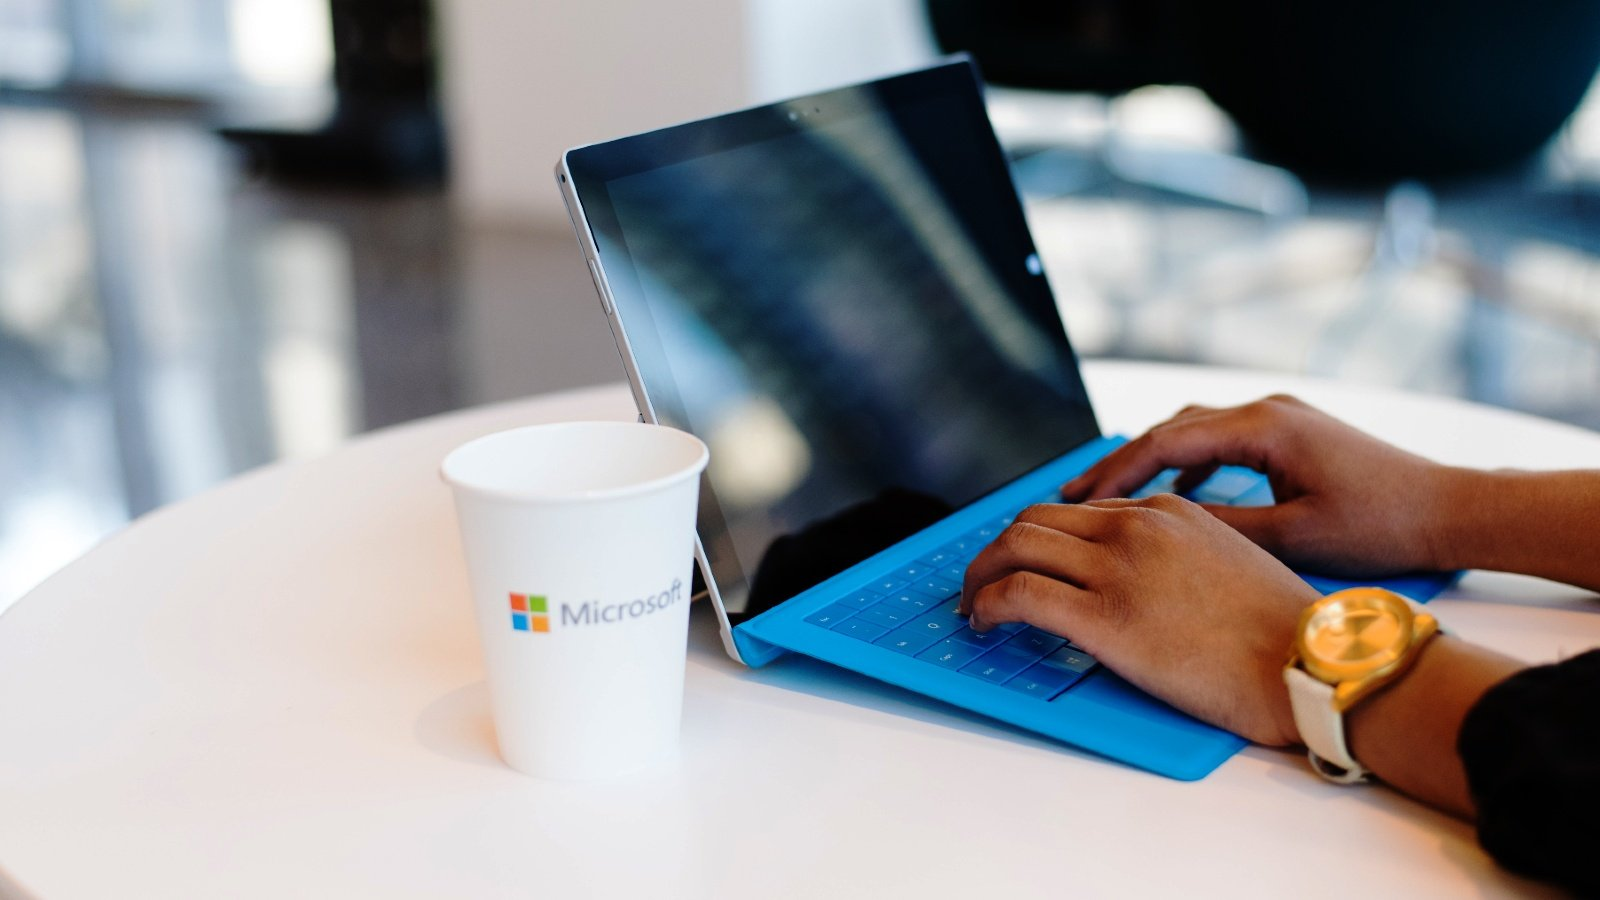 Microsoft fixes issue blocking Microsoft Teams, Outlook logins